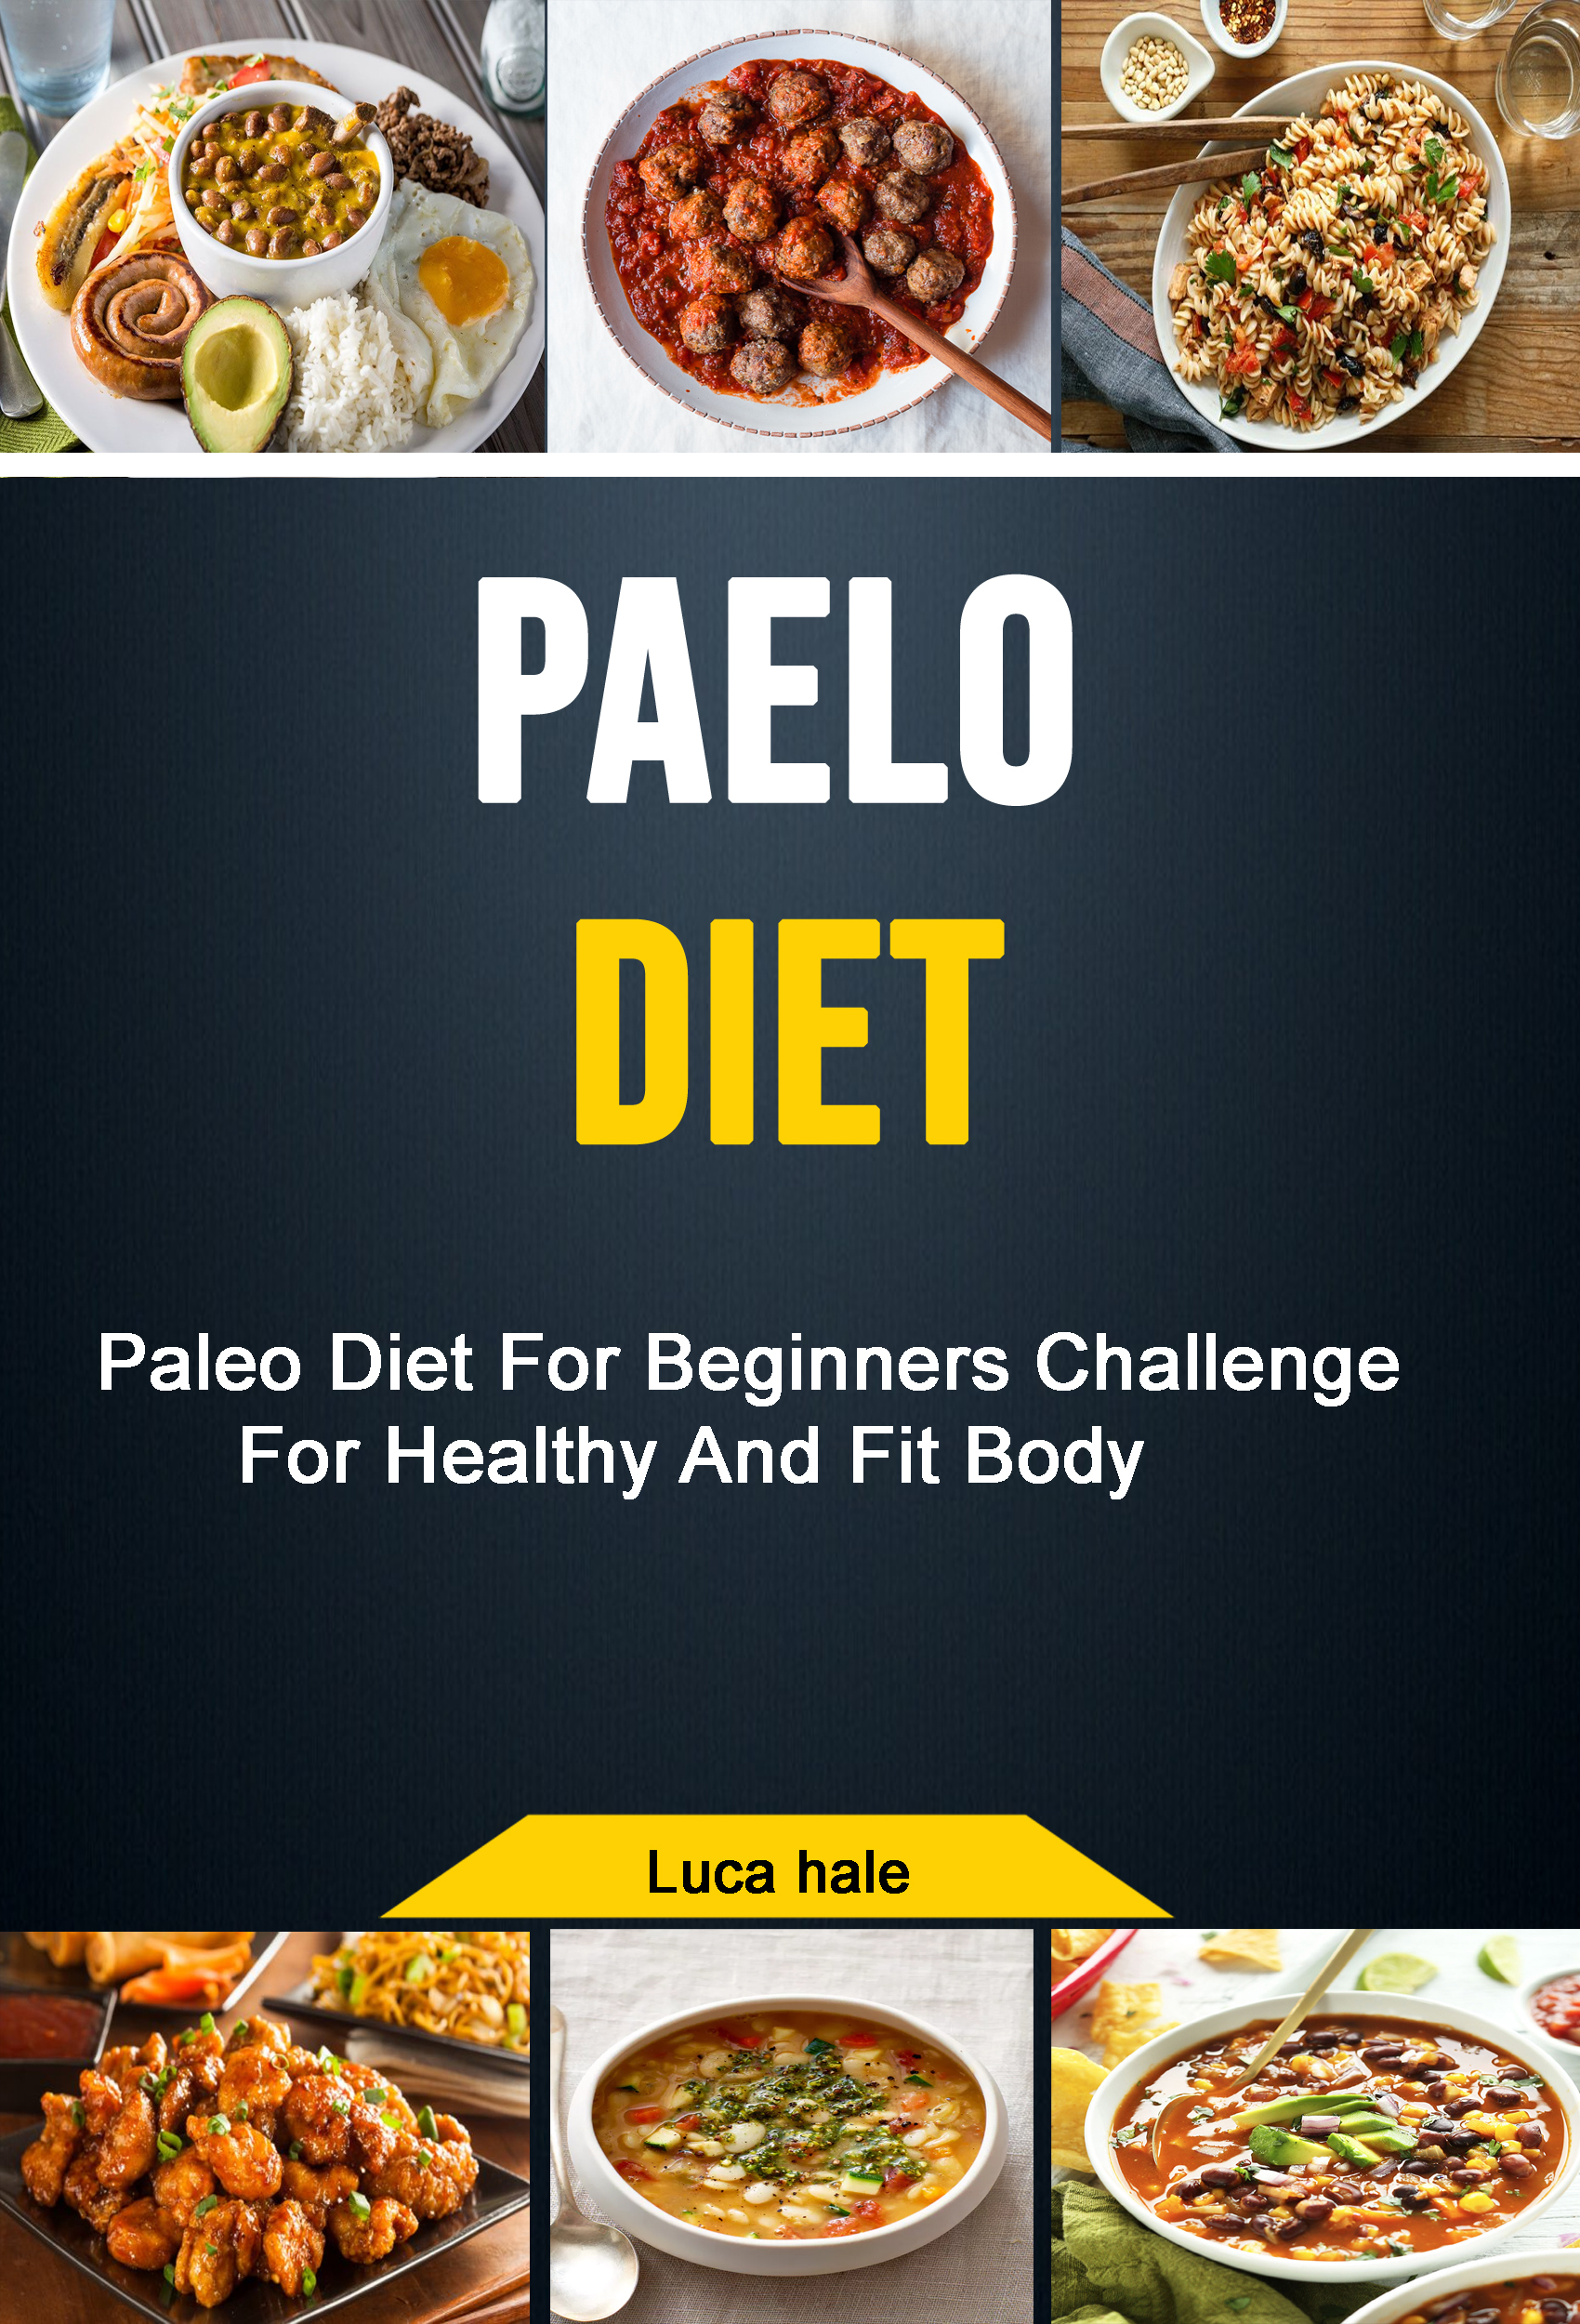 Paelo diet: paleo diet for beginners challenge for healthy and fit body